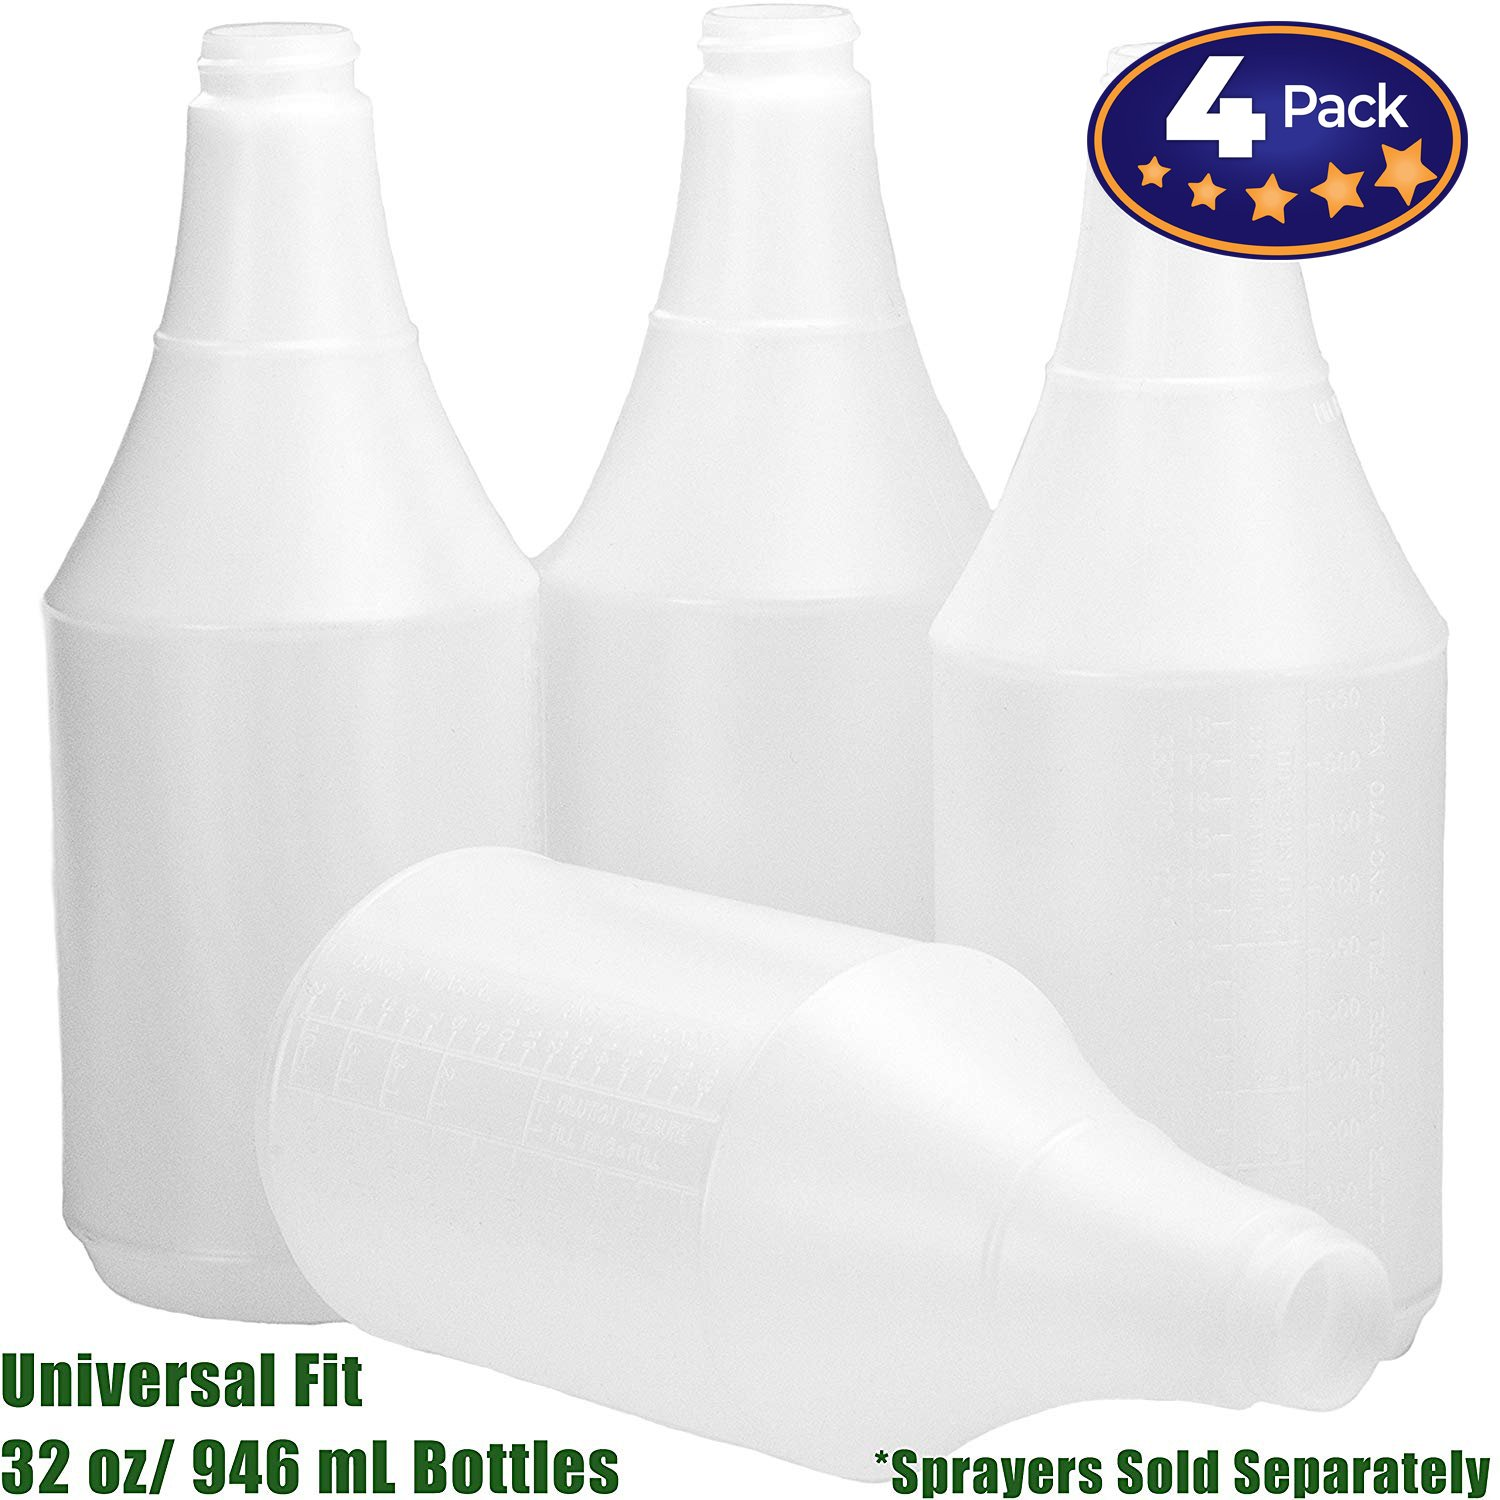 Mop Mob Commercial Grade Chemical Resistant 32 oz Bottles ONLY 4 Pack Embossed Scale for Measuring. Pair with Industrial Spray Heads for Auto Car Detailing Janitorial Cleaning Supply or Lawn Care